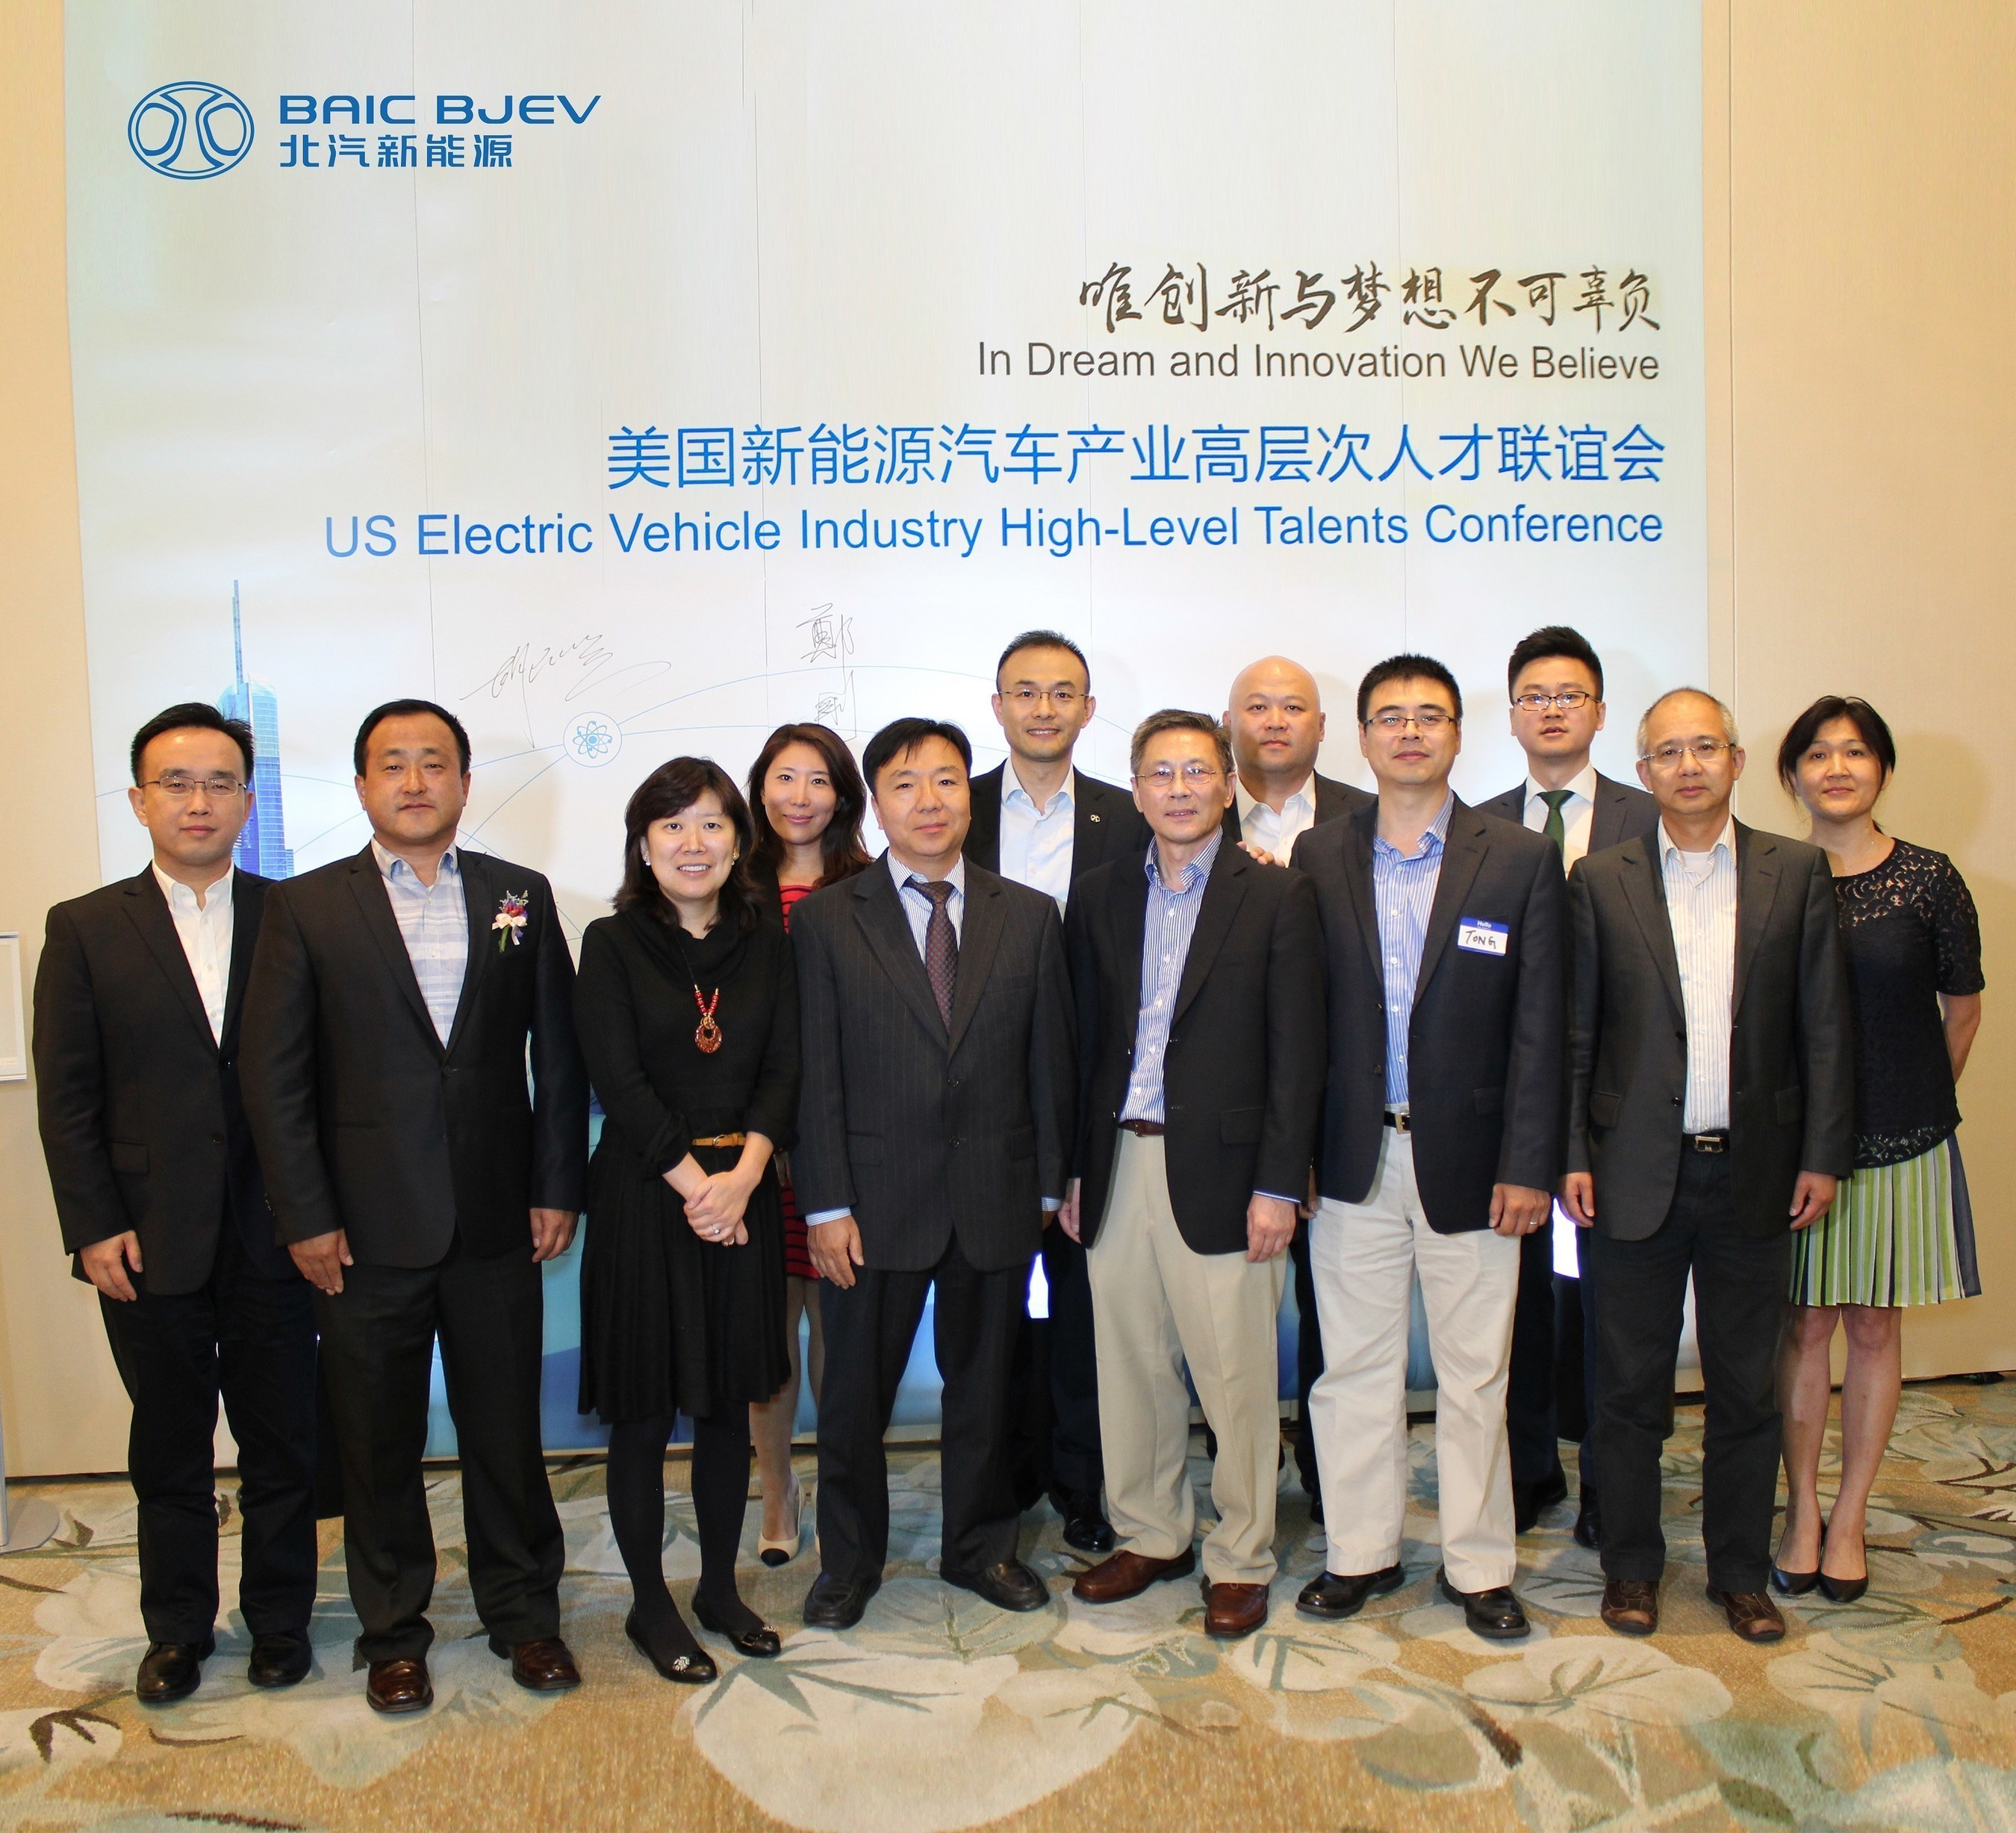 In Dream and Innovation We Believe--BAIC BJEV North America Technical Innovation Strategy released